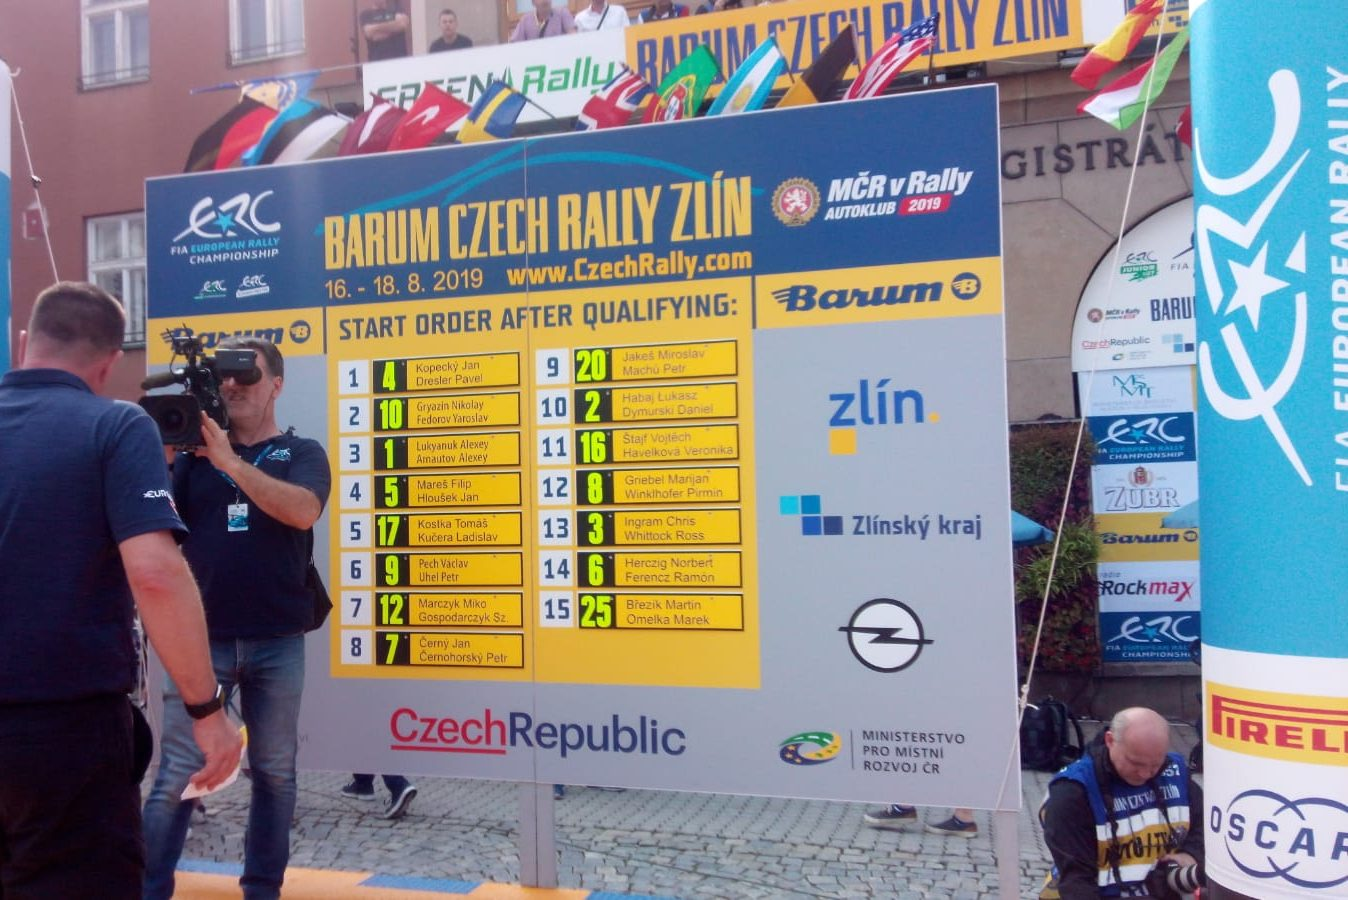 ERC: BARUM CZECH RALLY ZLÍN [16-18-2019] RoadOrderFri-e1565965506403